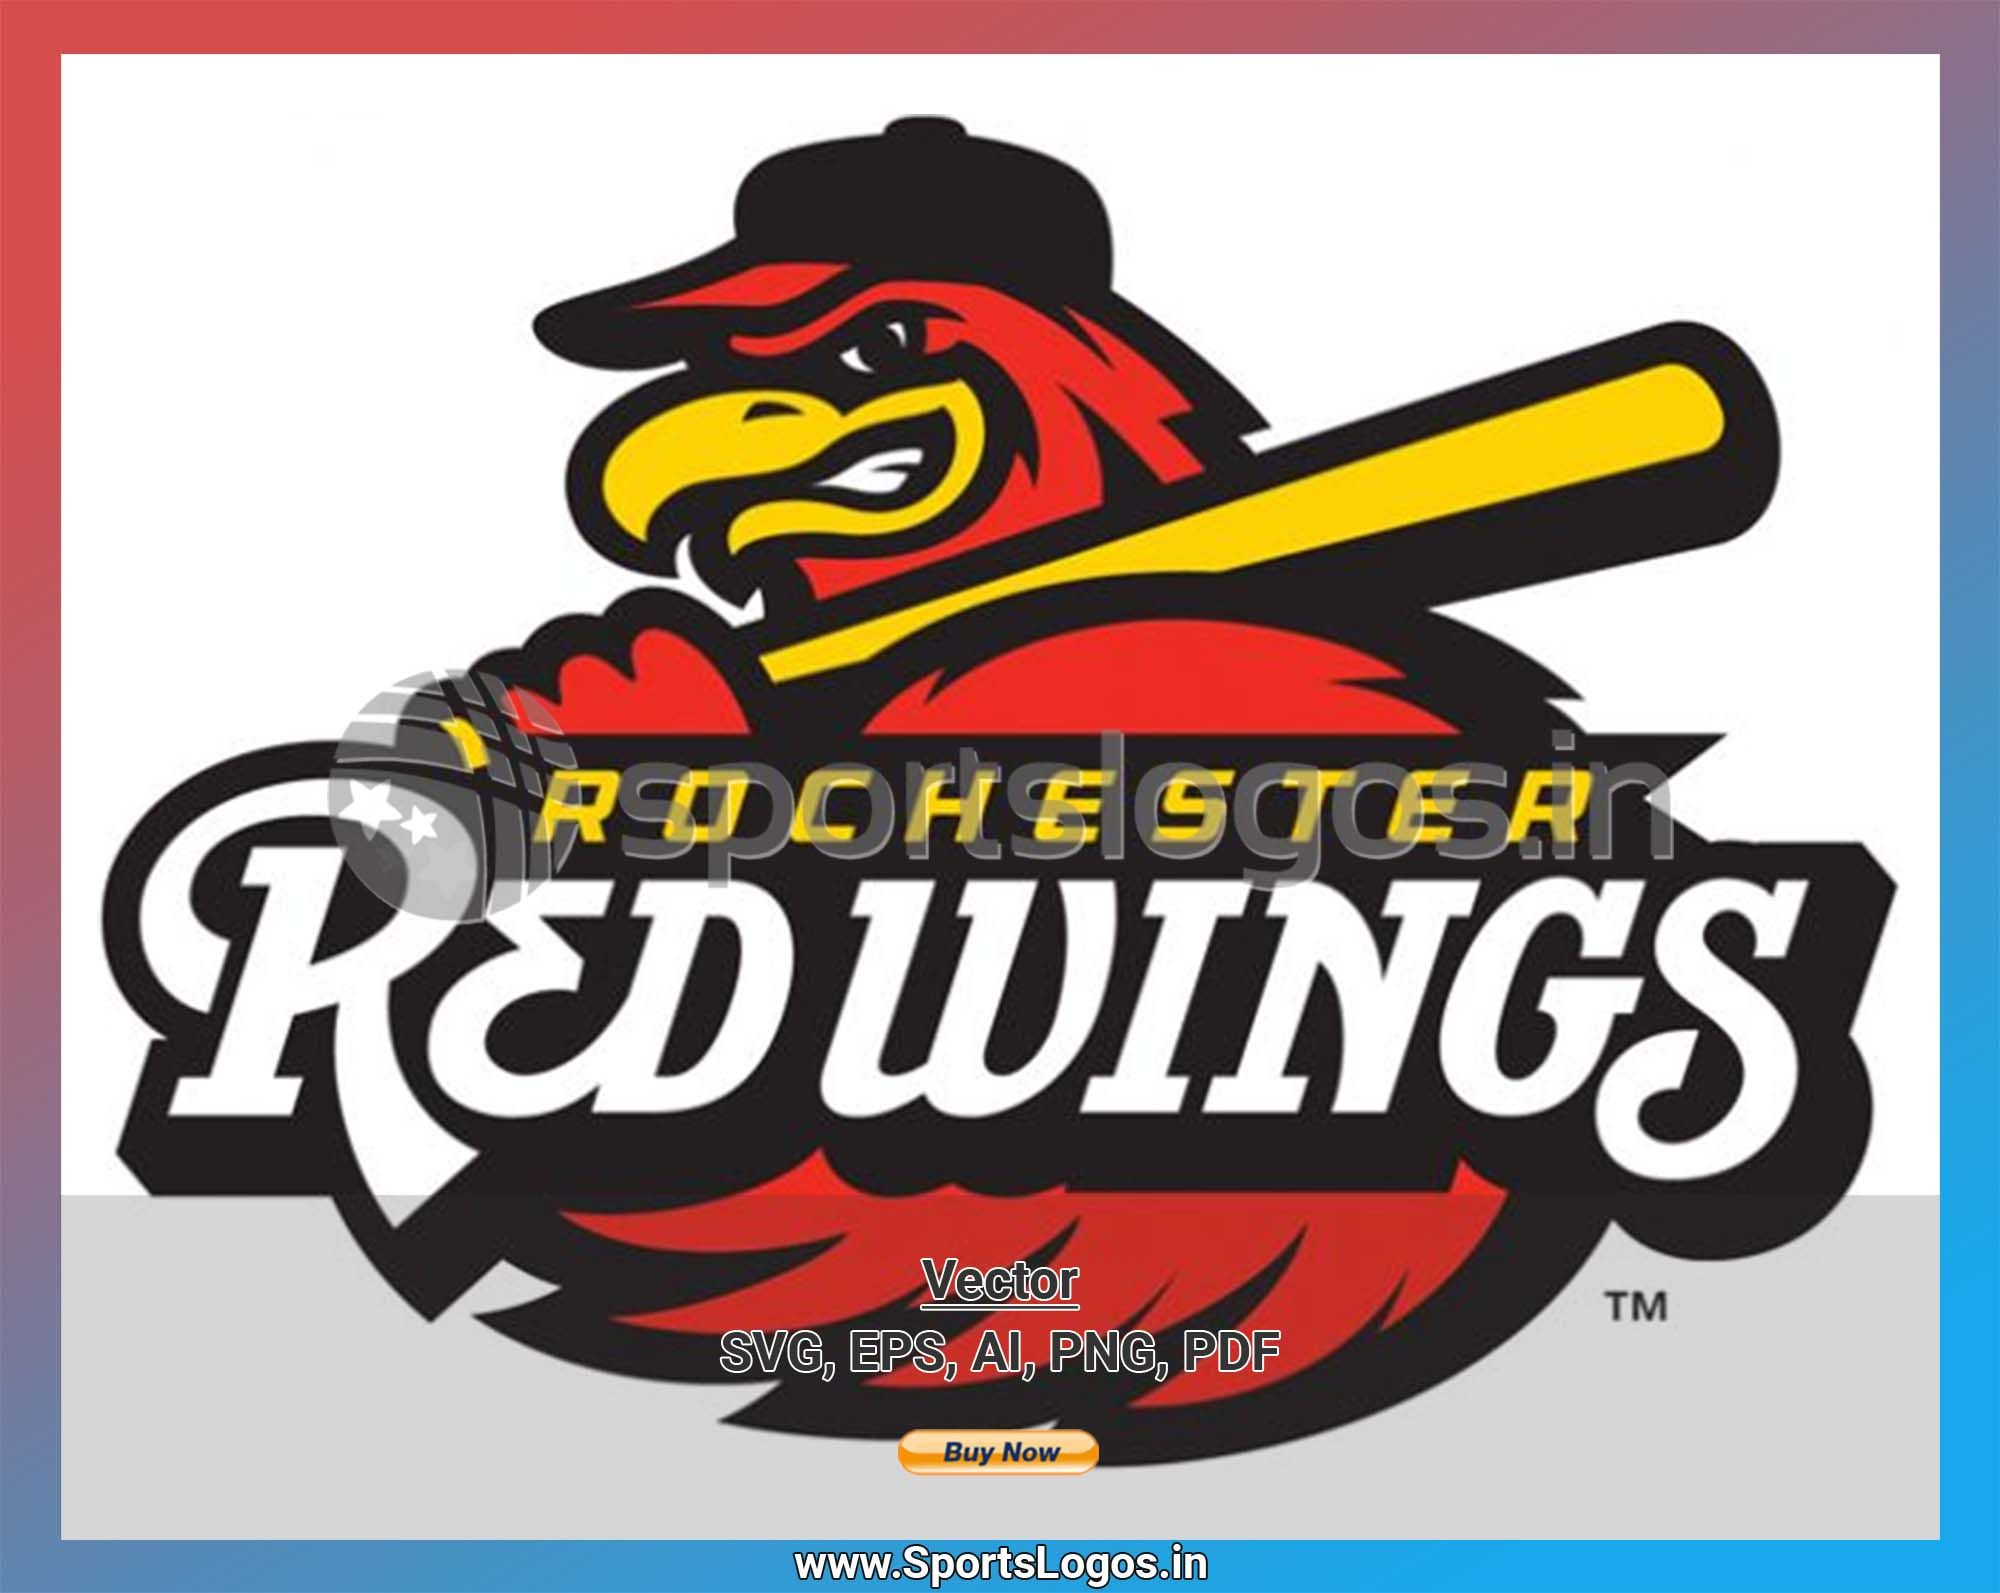 Rochester Red Wings Baseball Sports Vector Svg Logo In 5 Formats Spln003673 Sports Logos Embroidery Vector For Nfl Nba Nhl Mlb Milb And More Red Wing